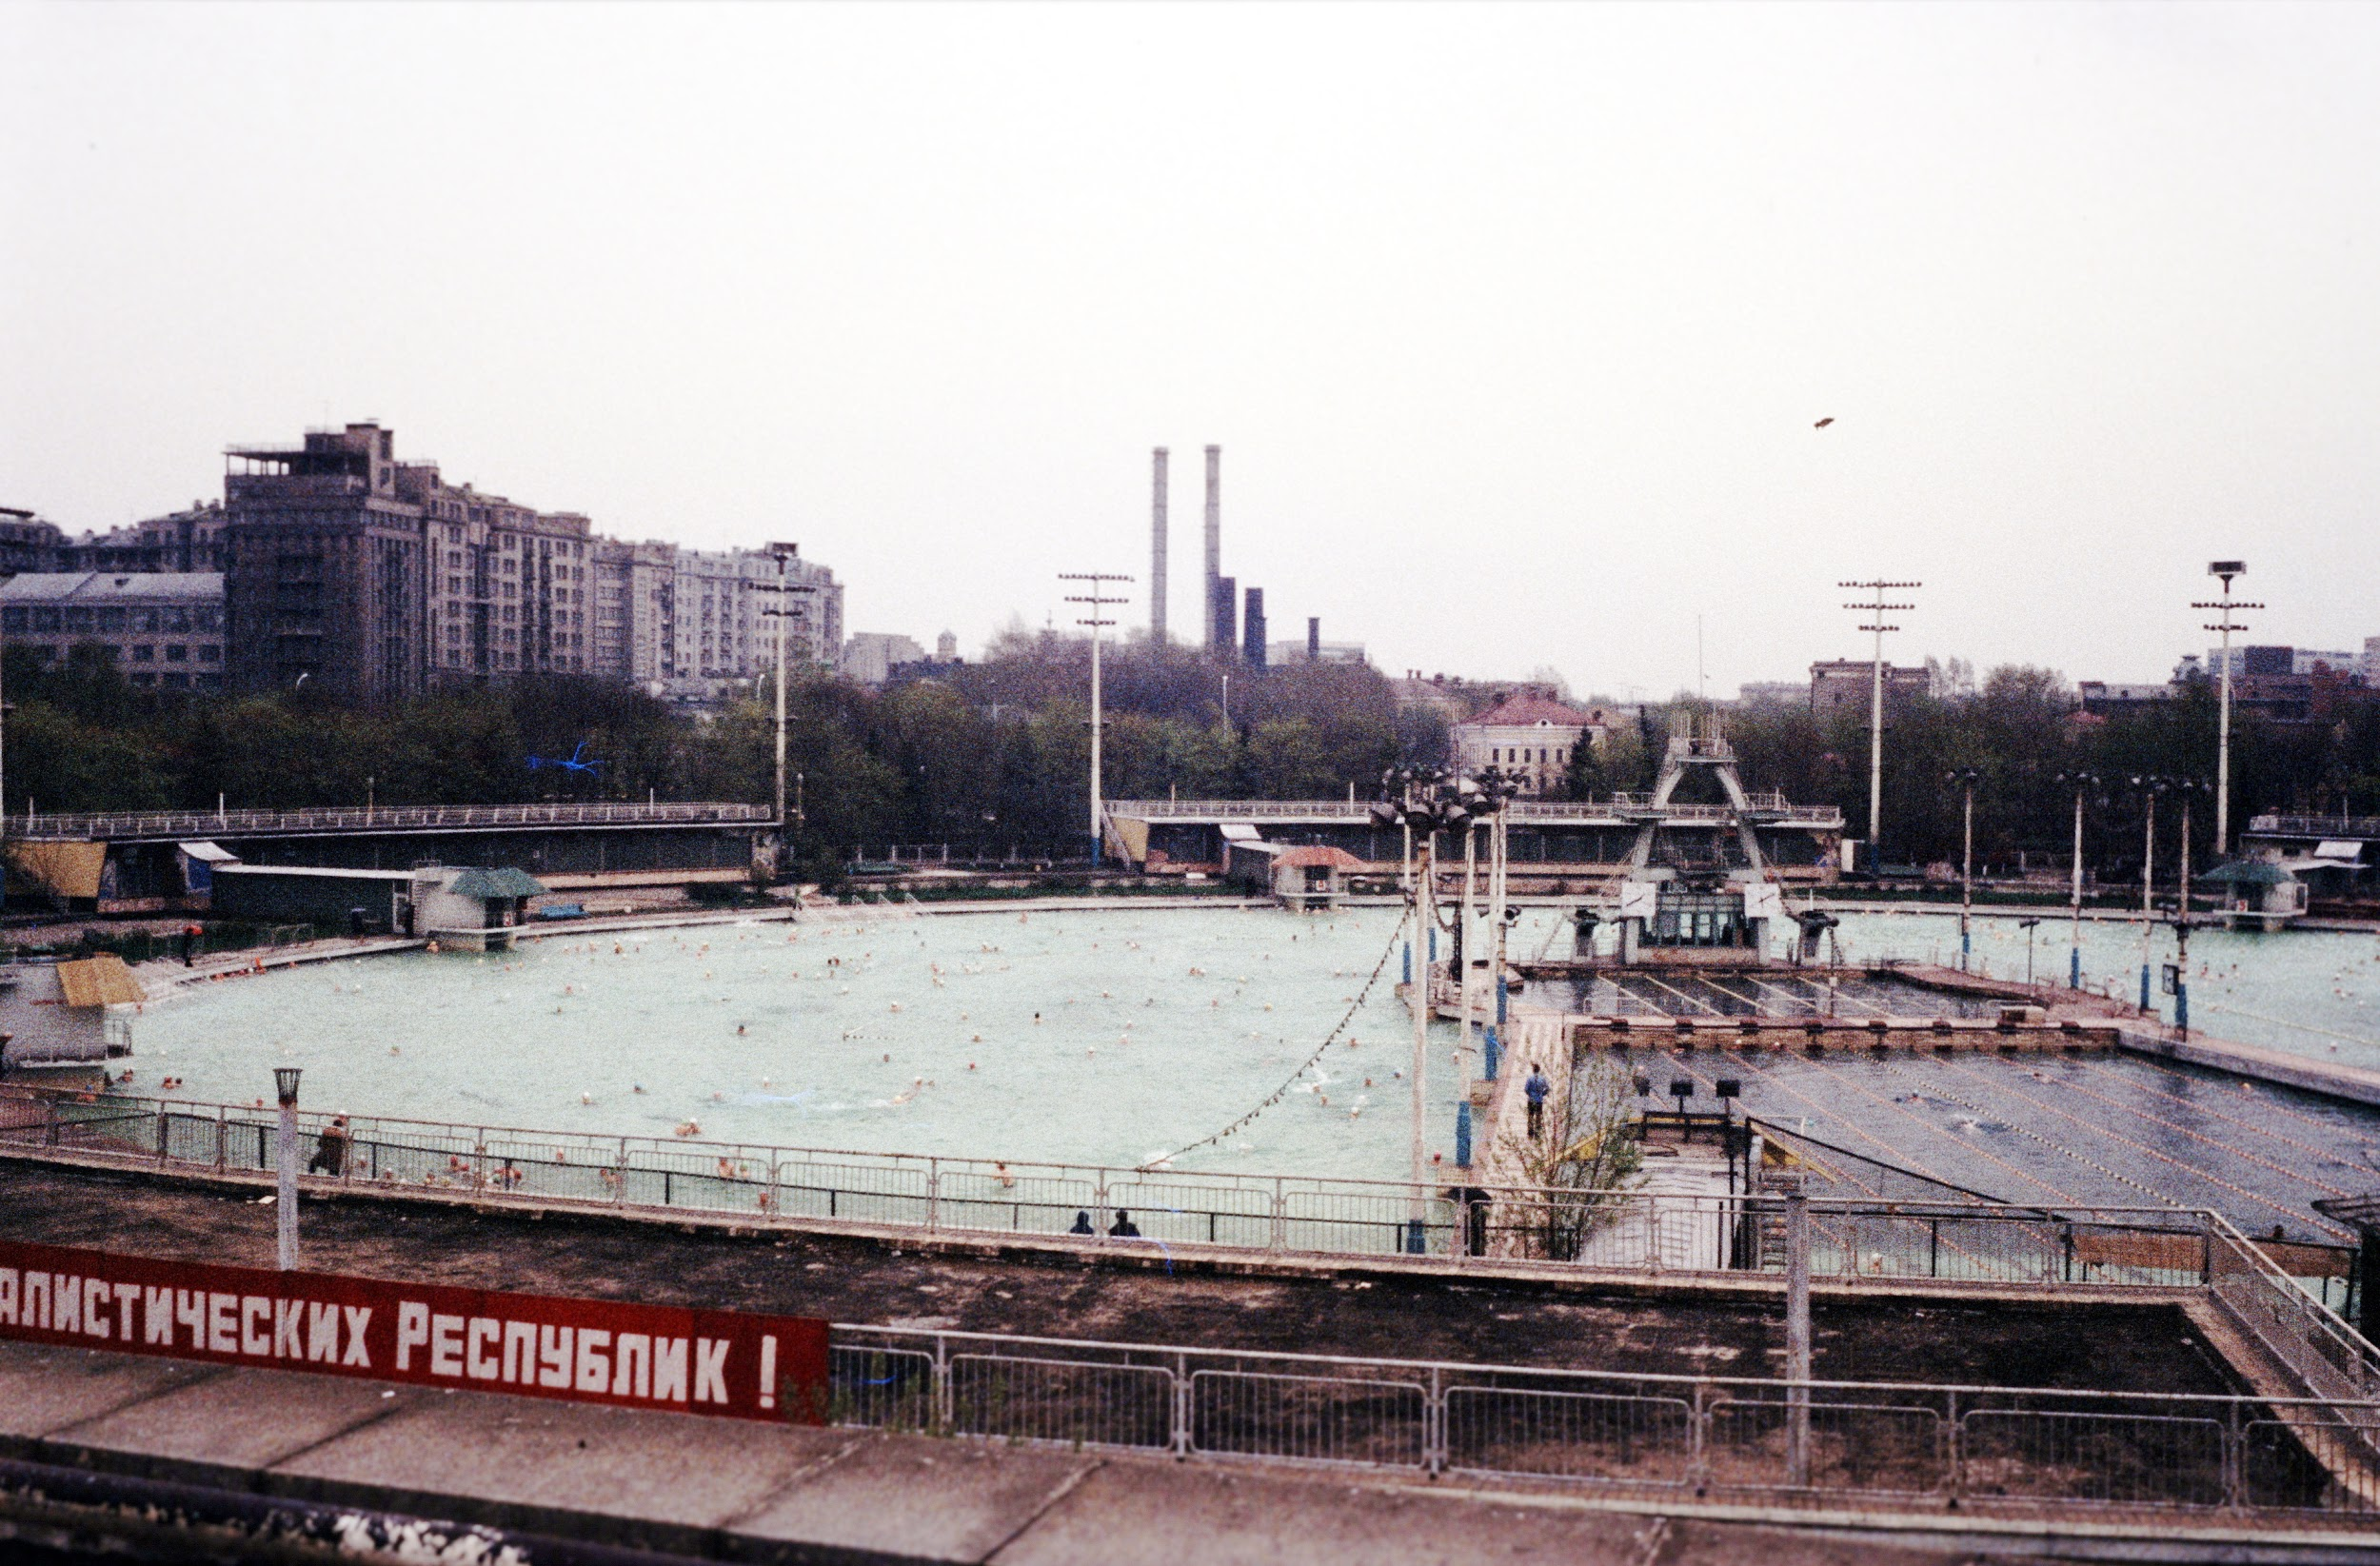 A large swimming pool.